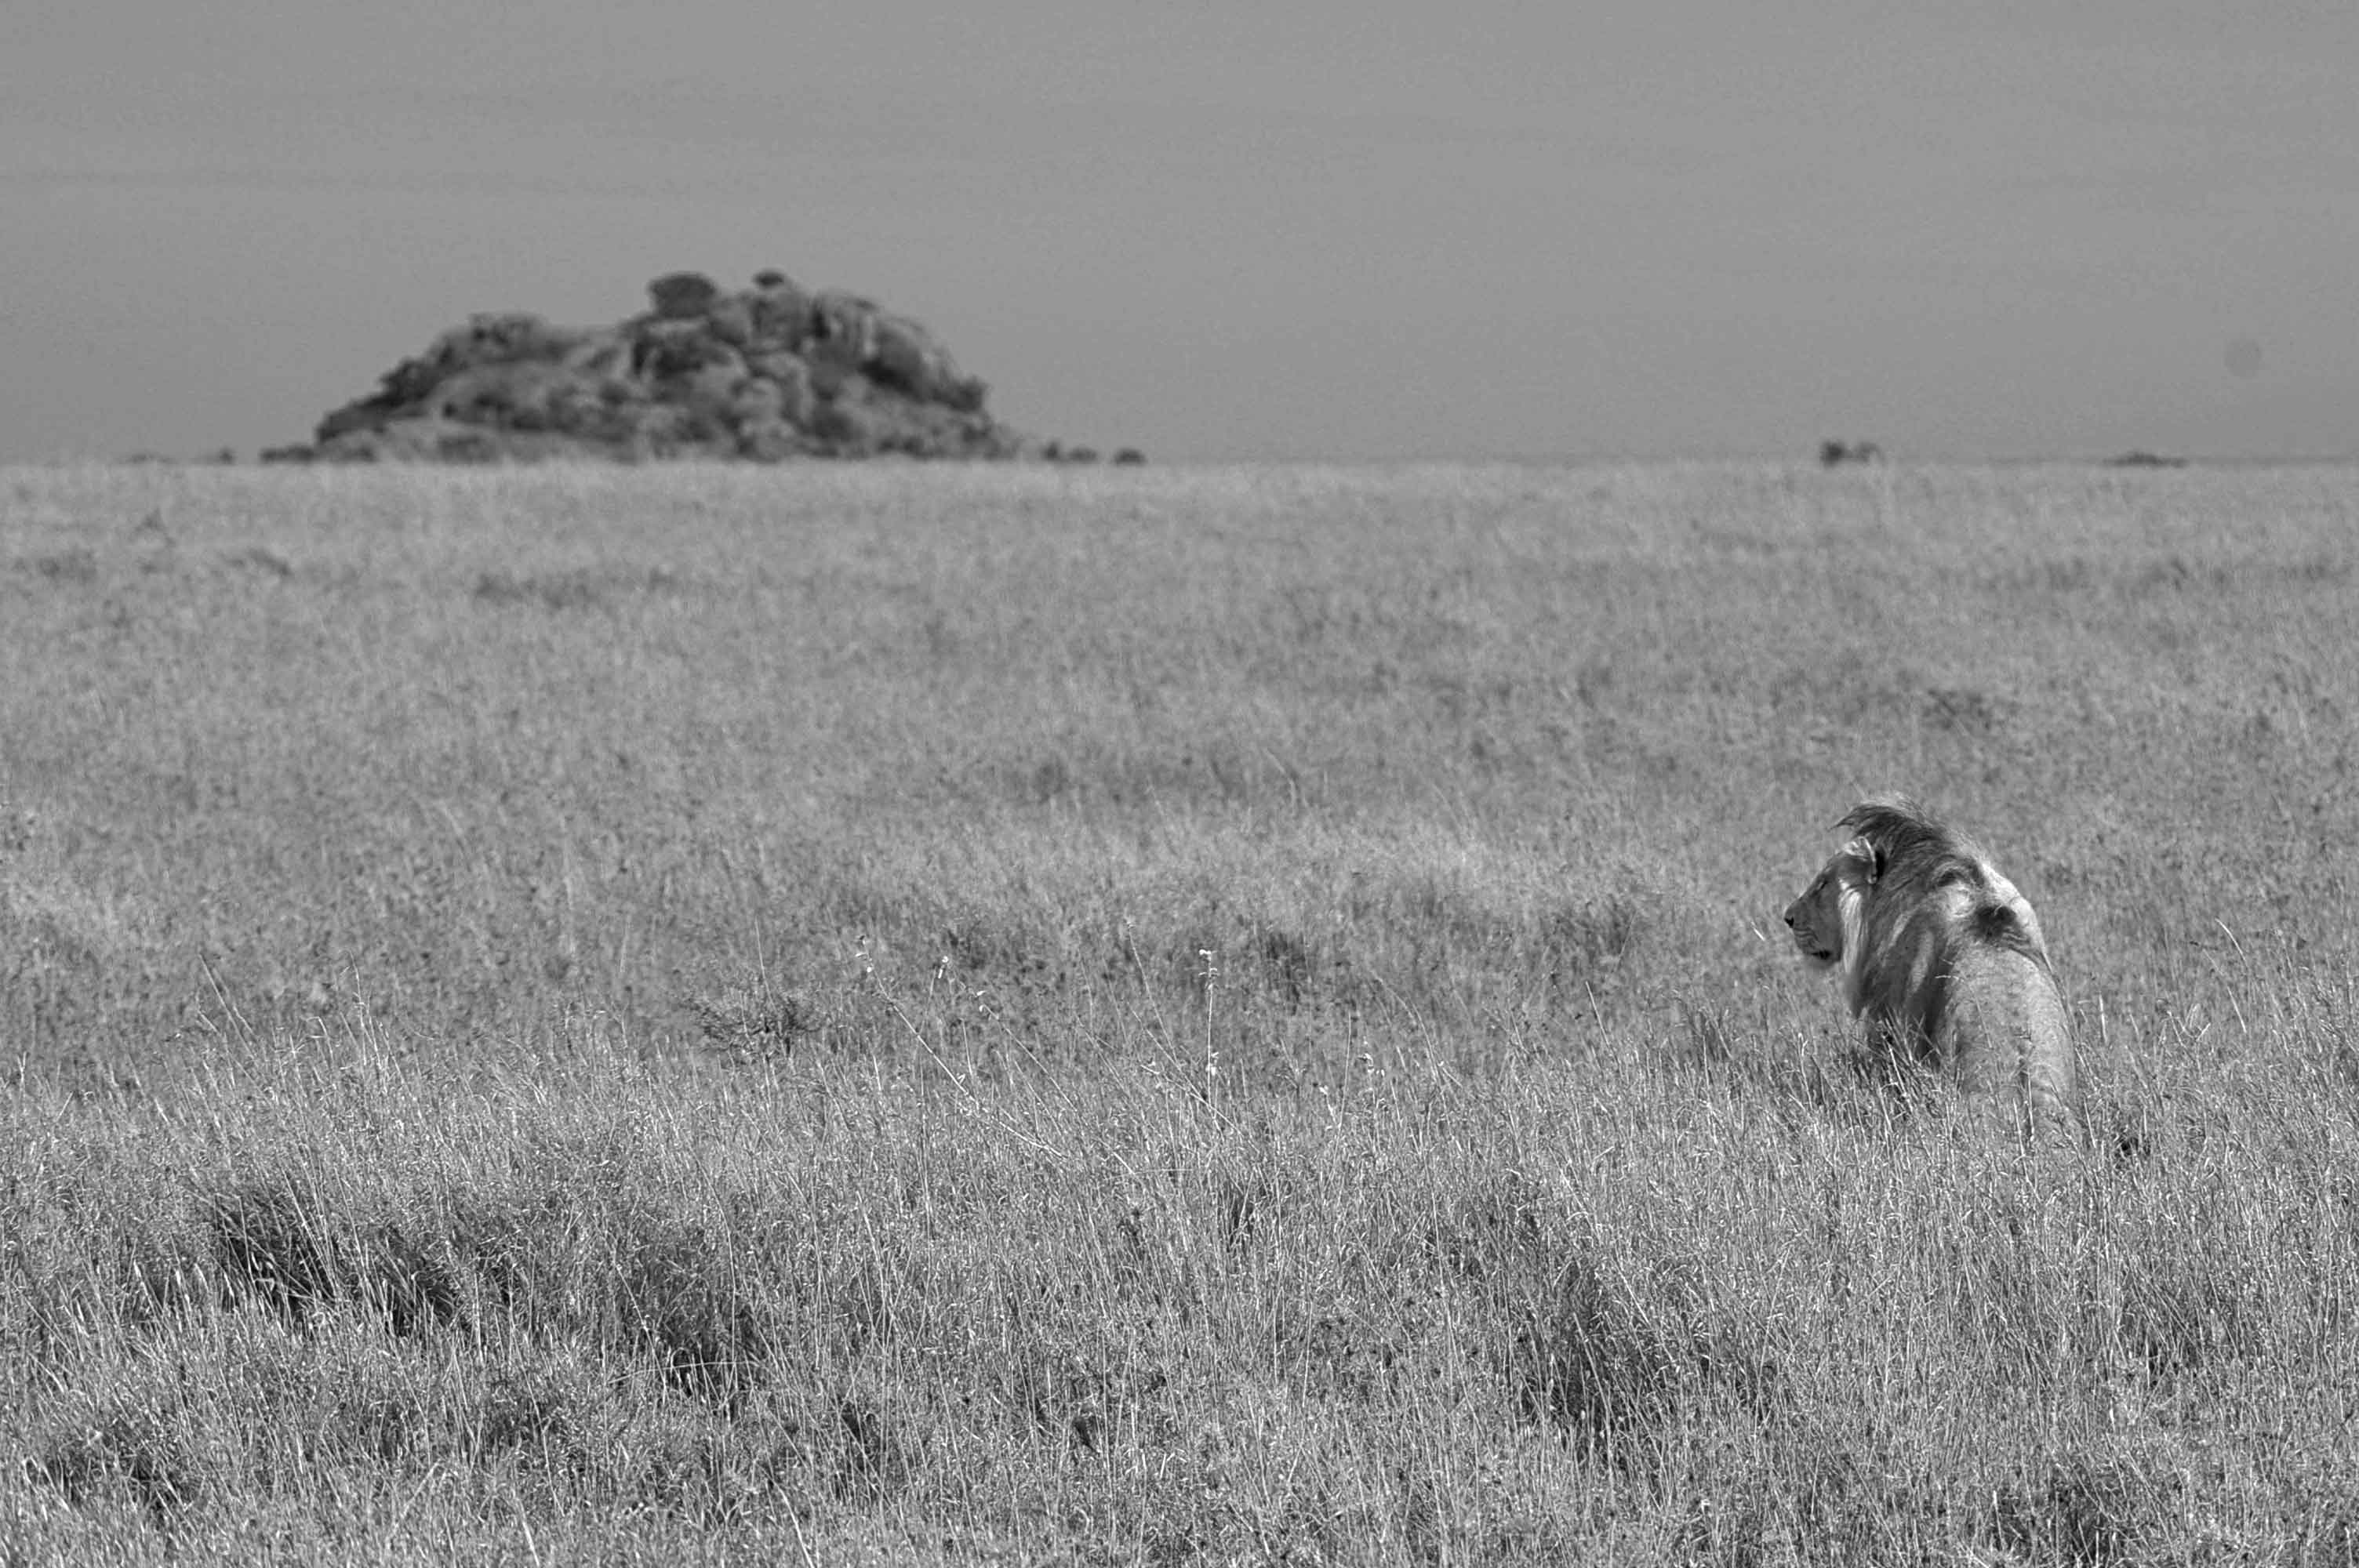 The King, Serengeti